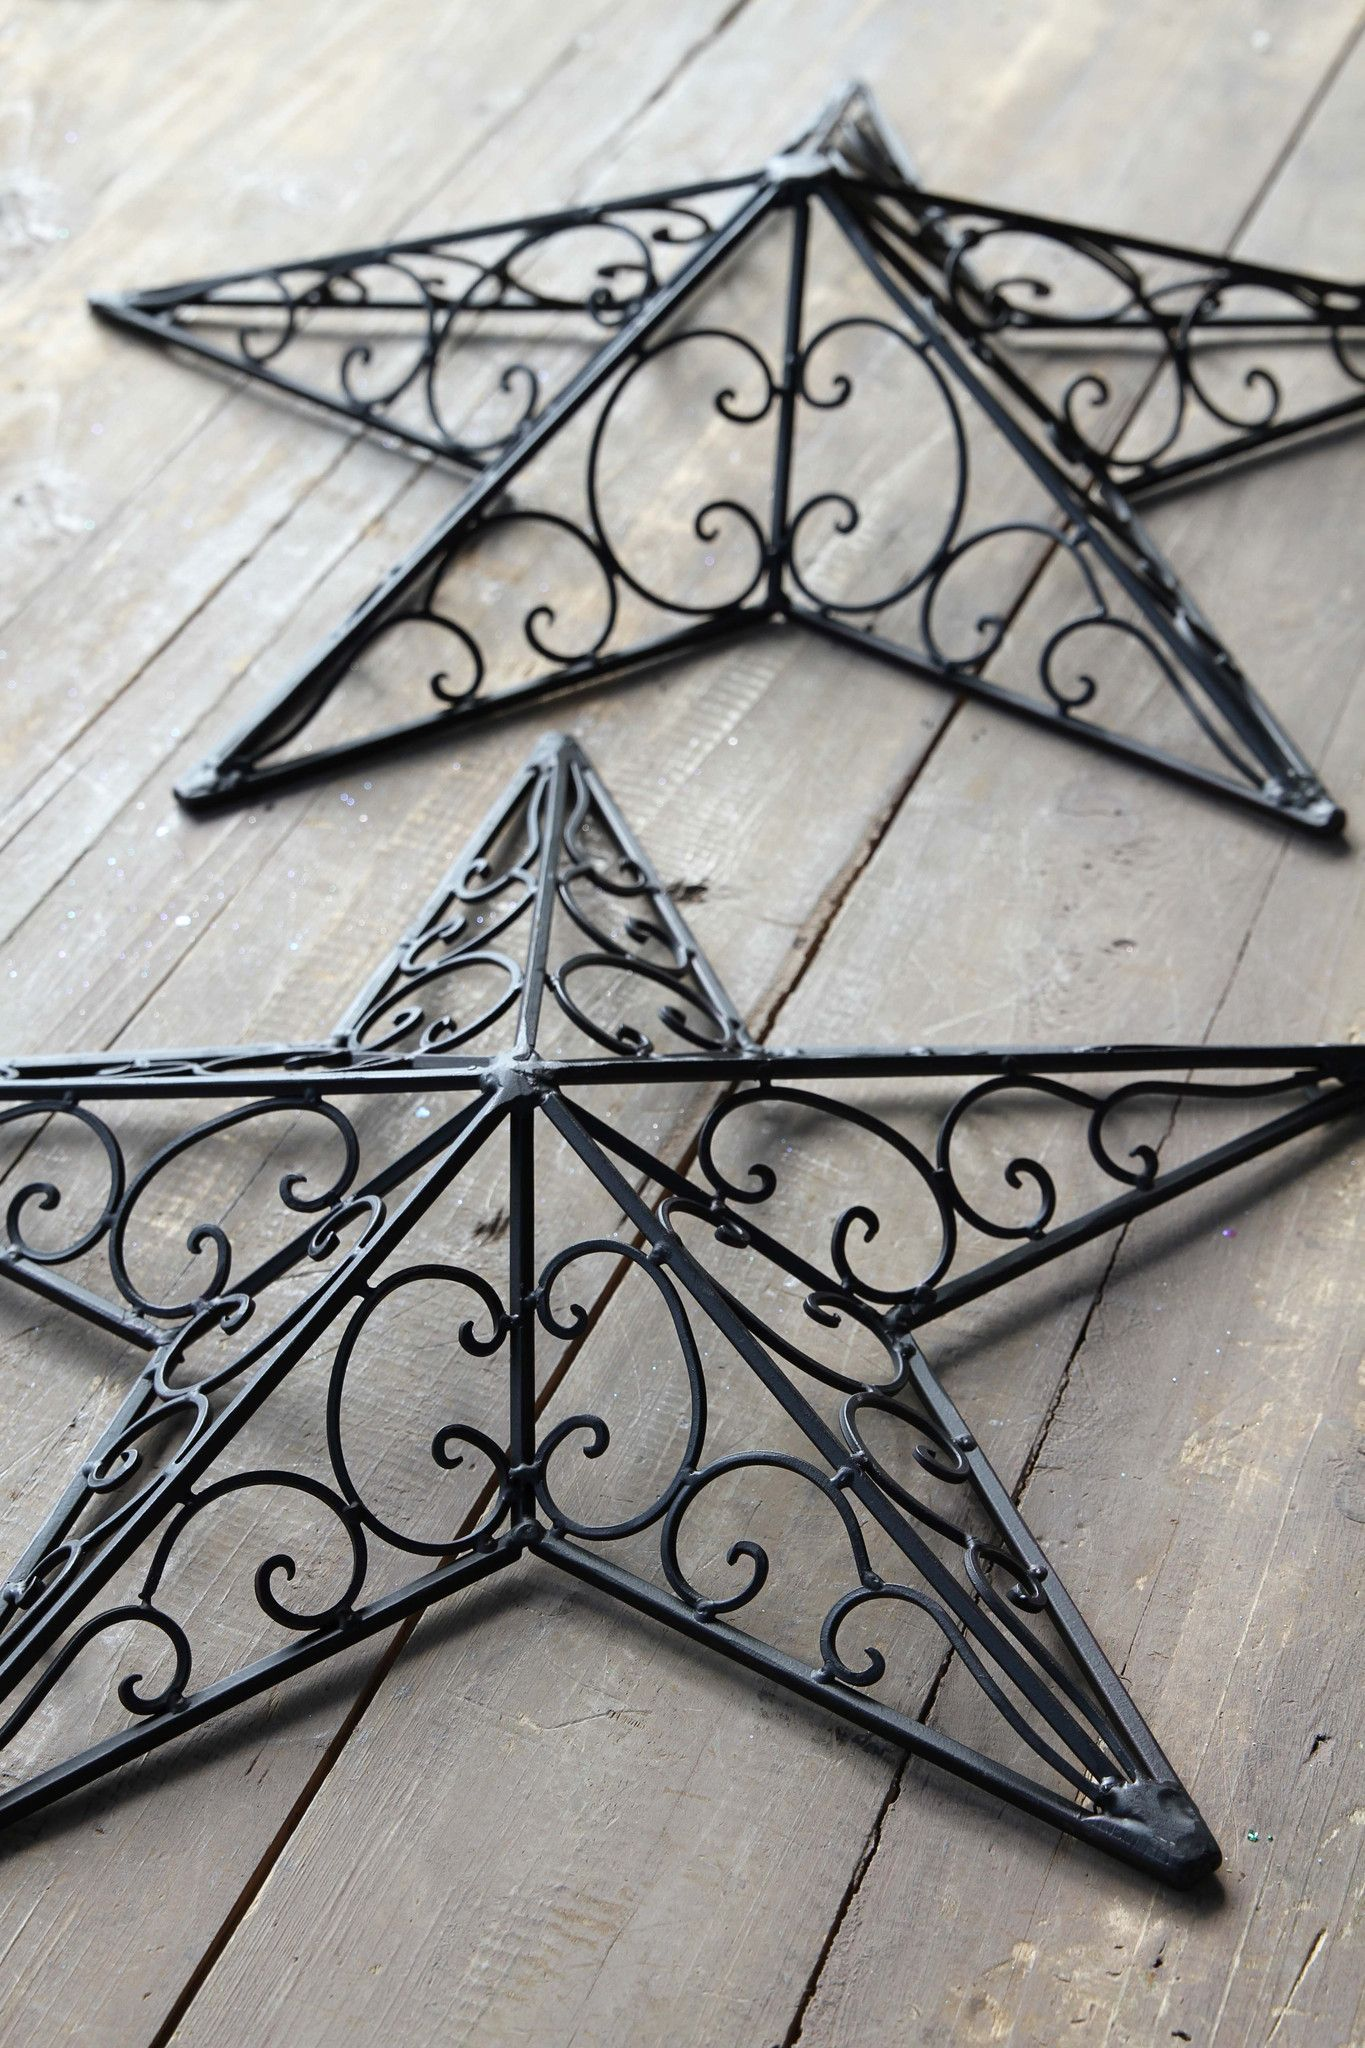 Handsomely Crafted Metal Swirl Stars in 2 sizes & 2 colors!